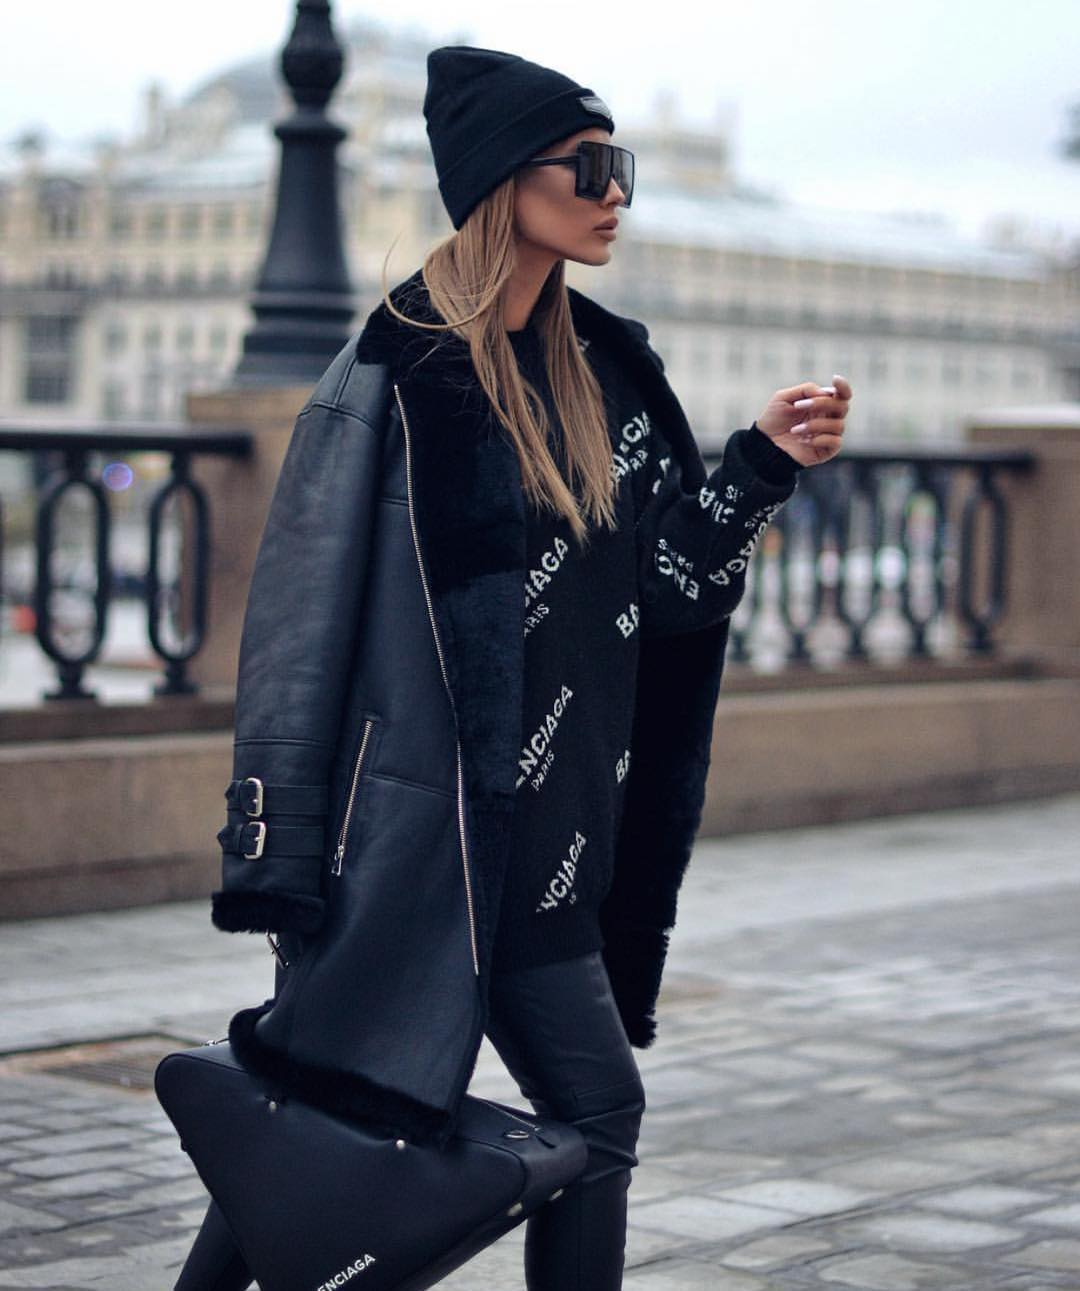 All Black Outfit Idea: Shearling Jacket, Oversized Sweater And Leather Pants 2020